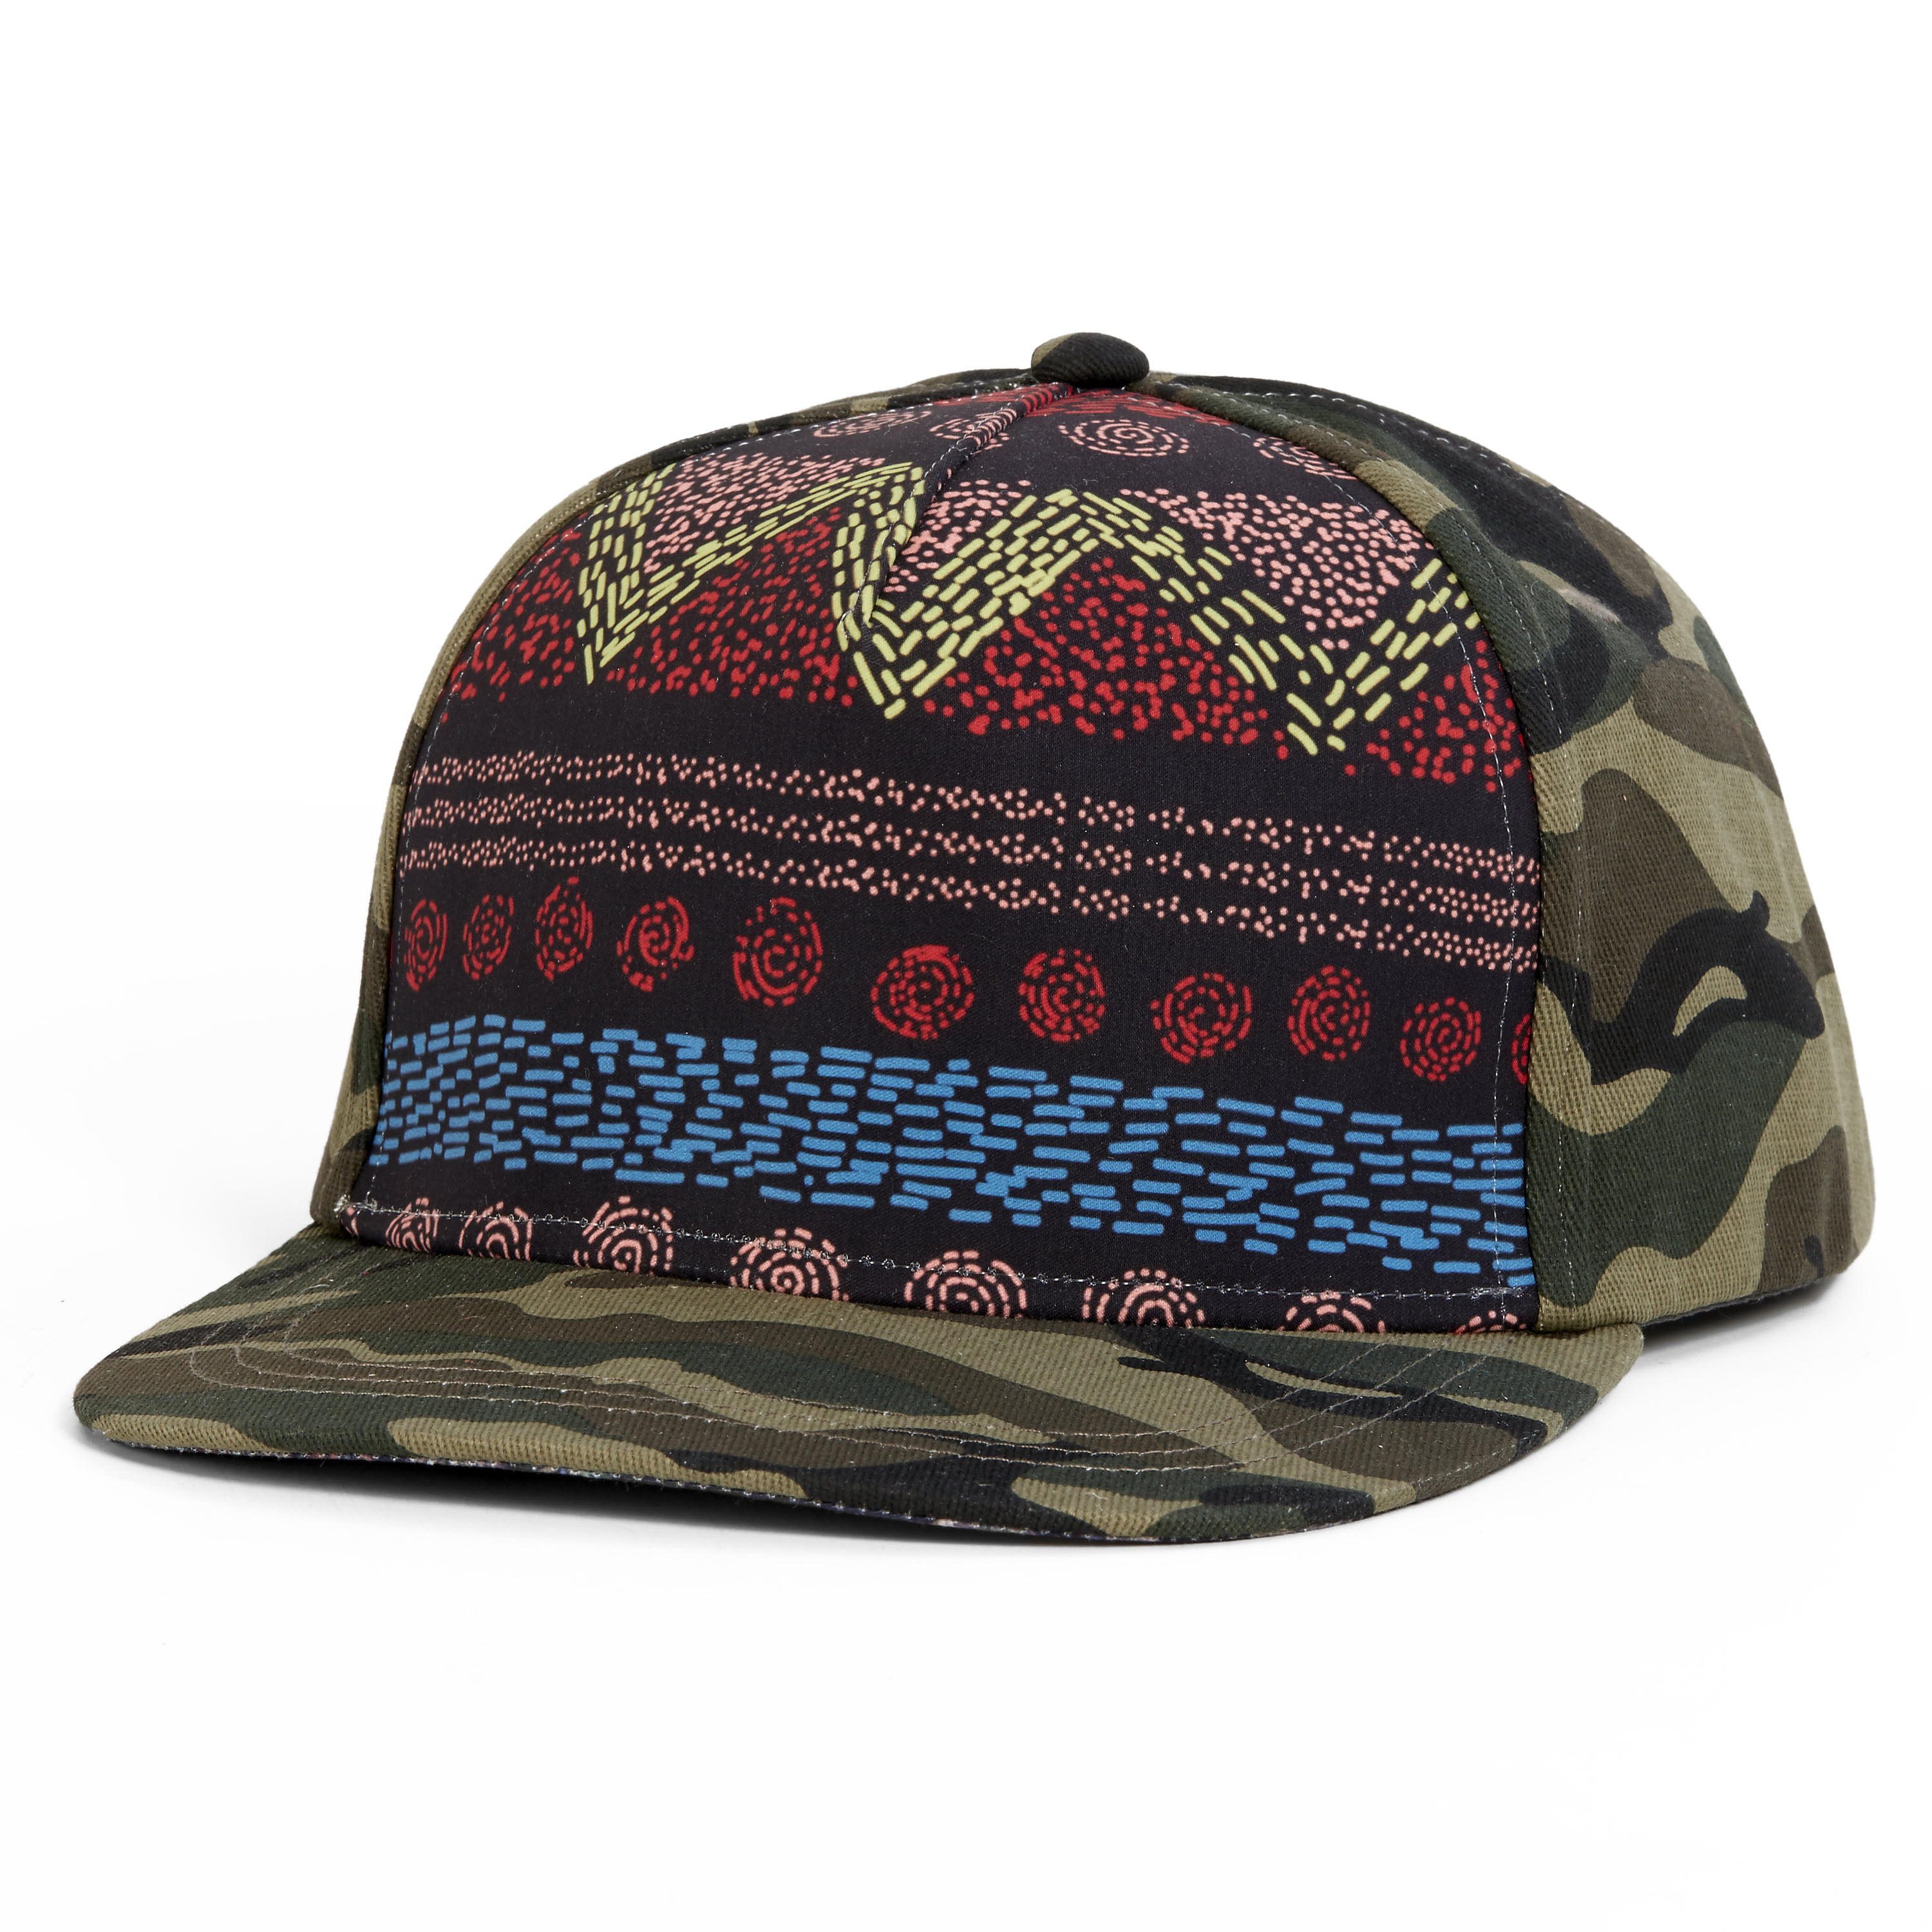 Turtle Fur Lady Camo Trucker Baseball Cap